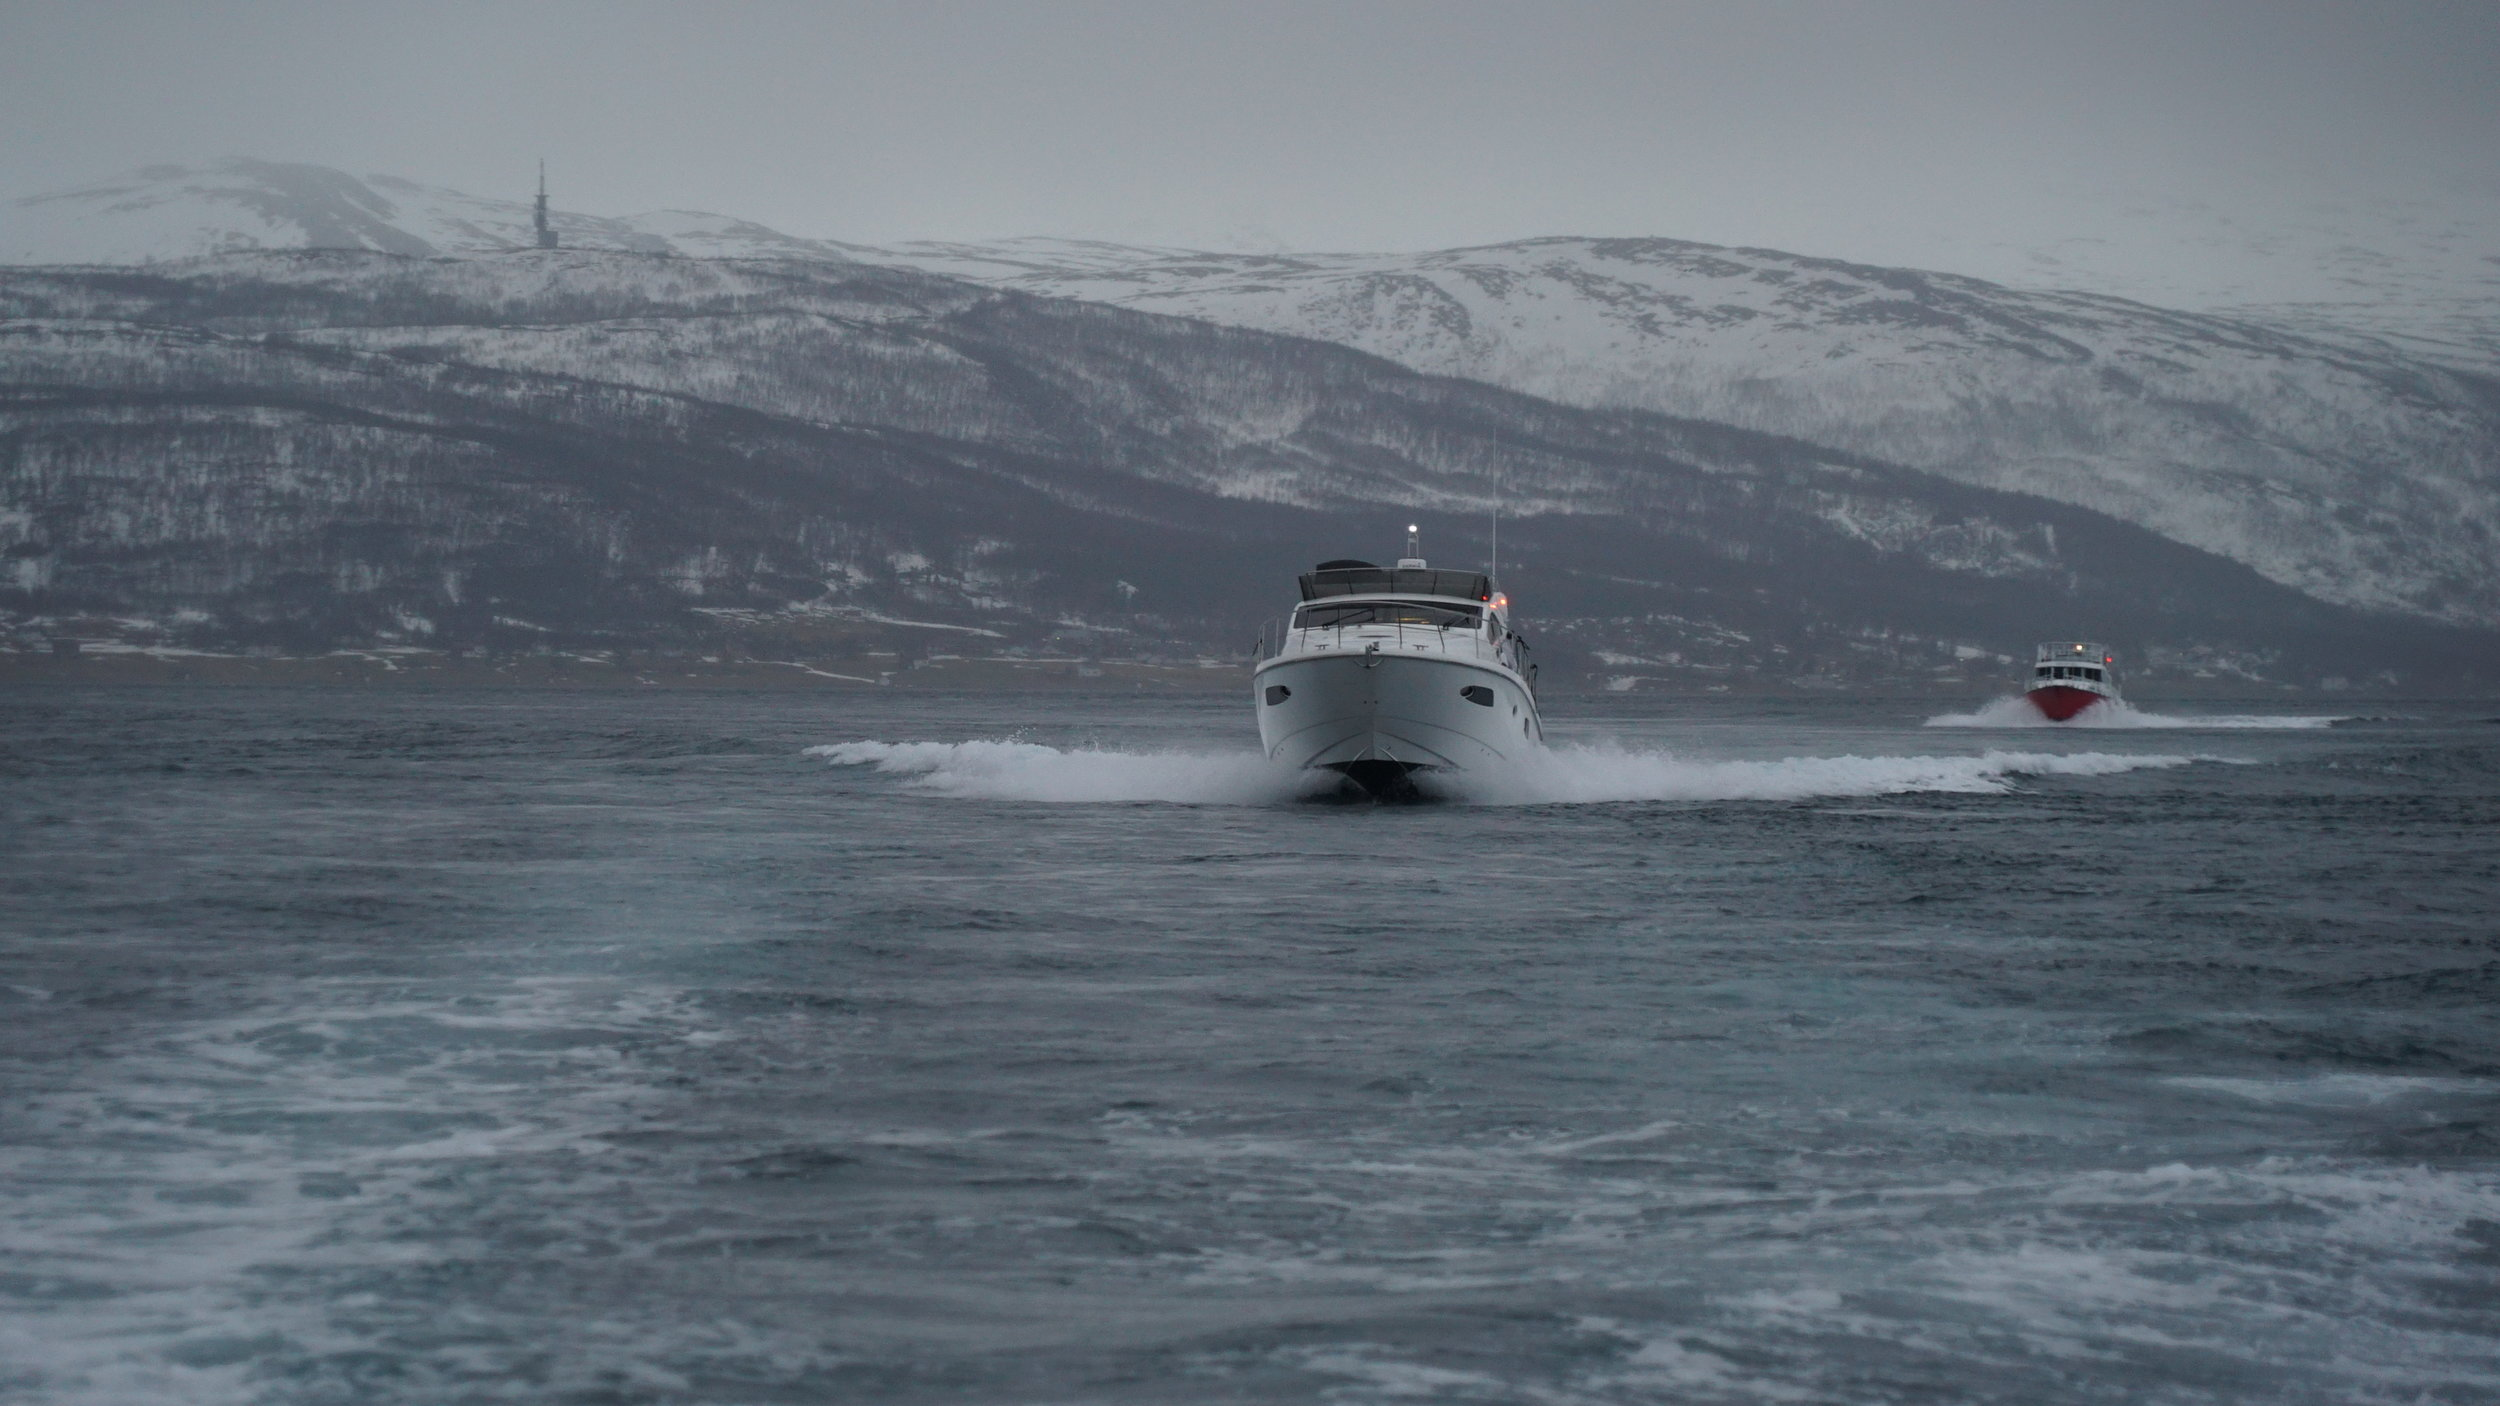 #Orcasafari | #Arctic Queen | #Tromso | Guests from Switzerland Spain